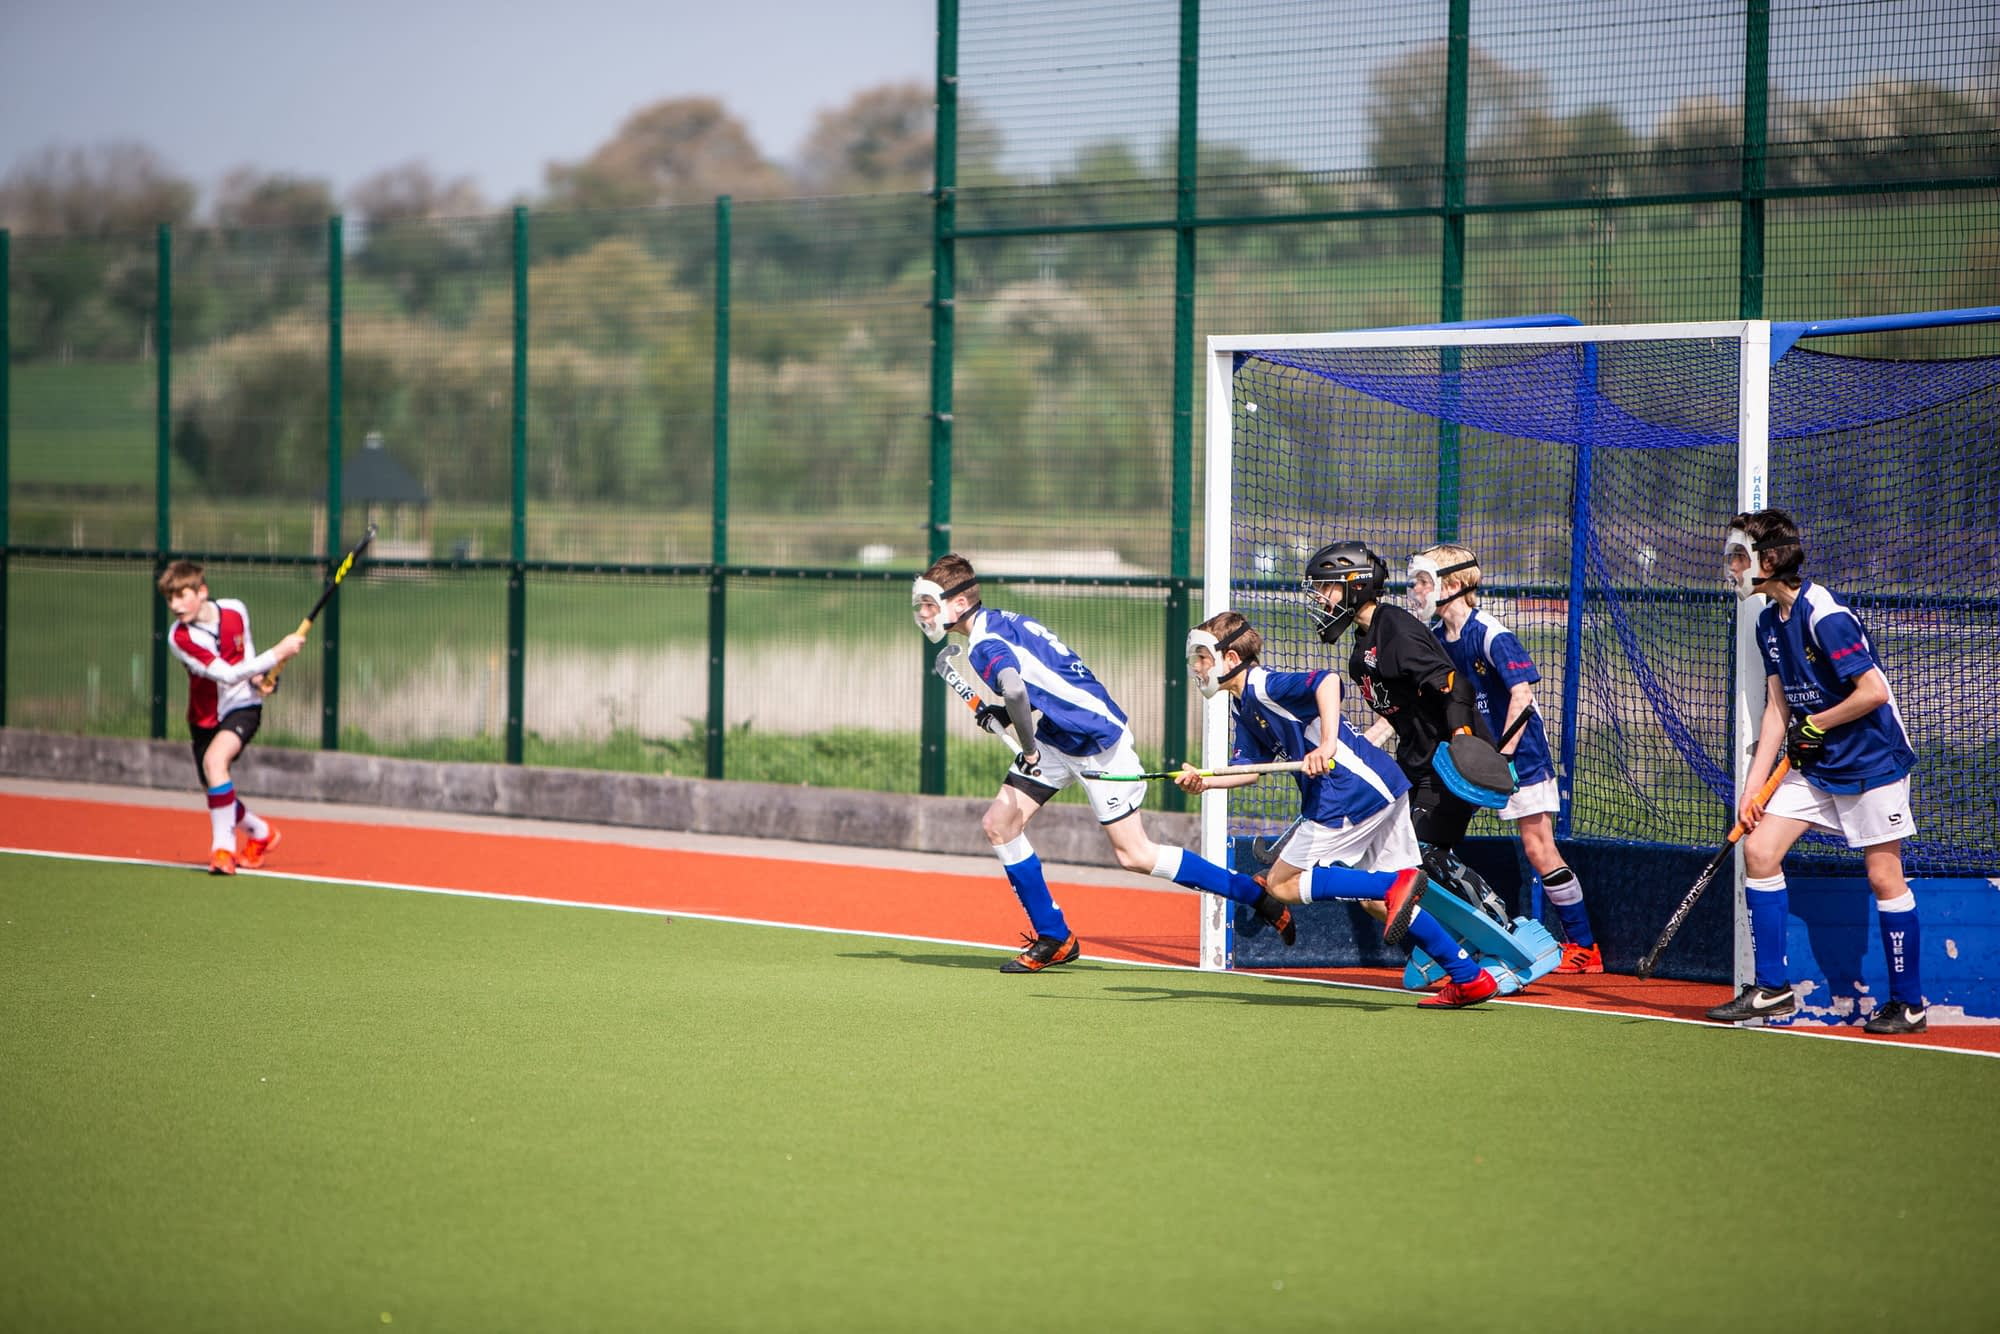 hockey team gloucestershire sports photography